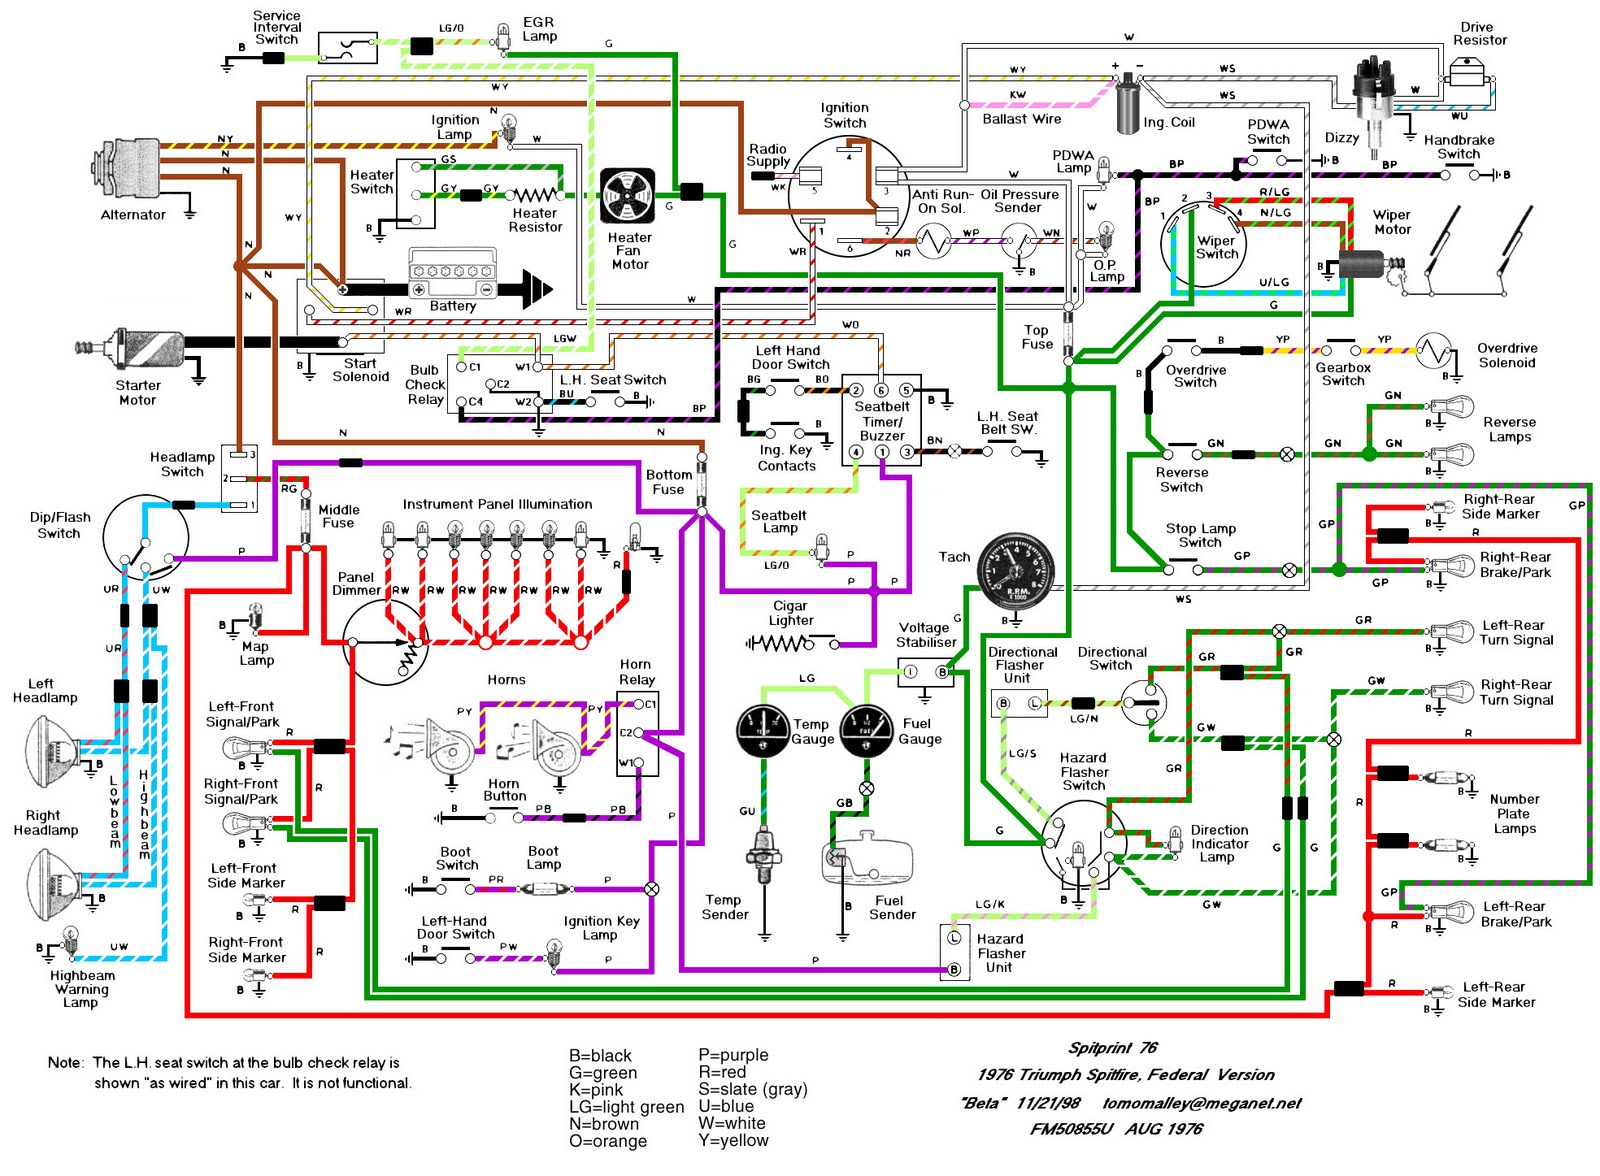 Free Auto Wiring Diagram: May 2011